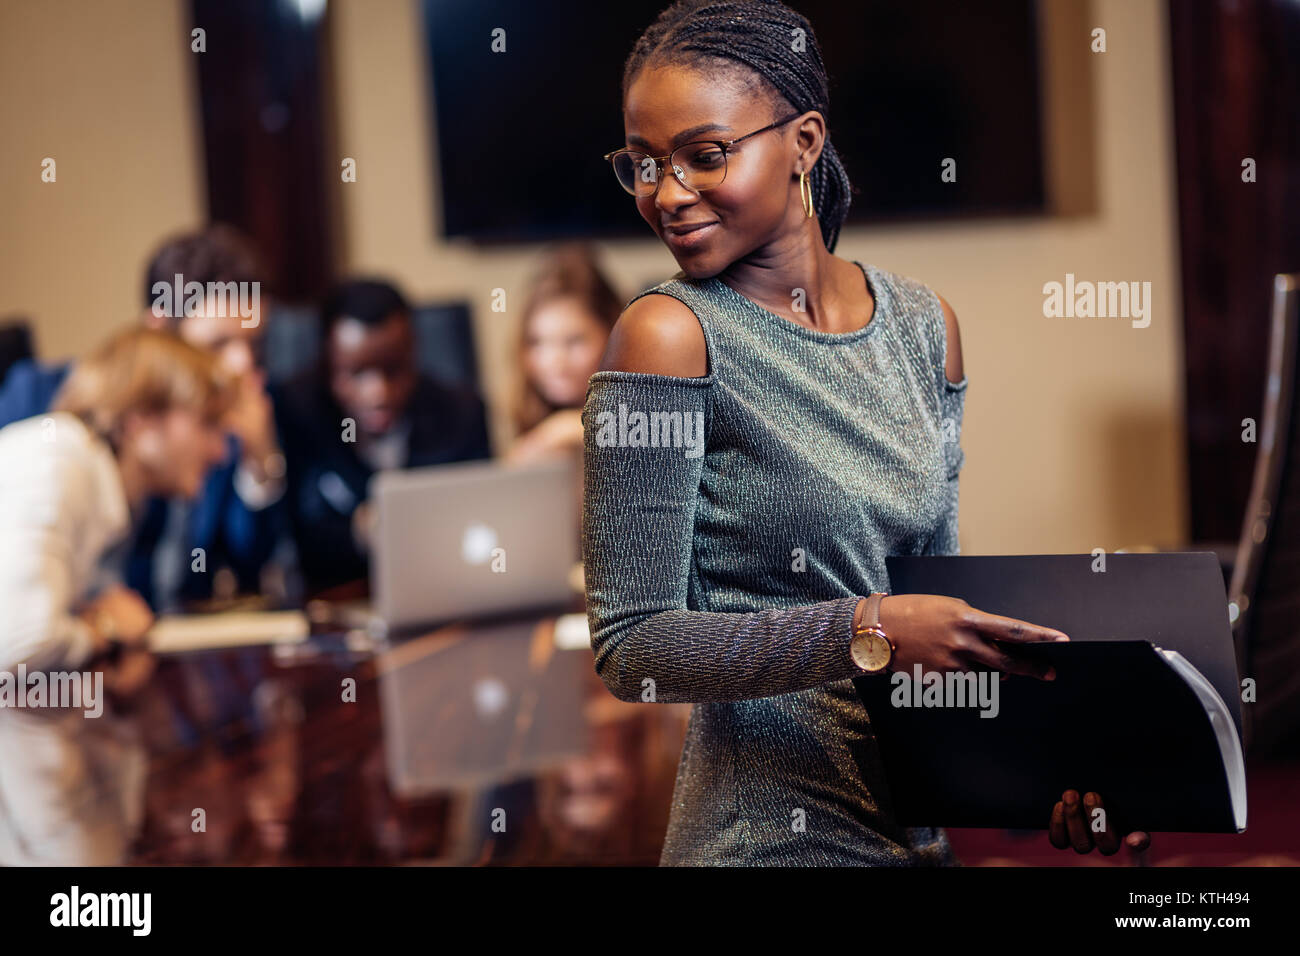 African businesswoman look at camera in boardroom with colleagues in background - Stock Image